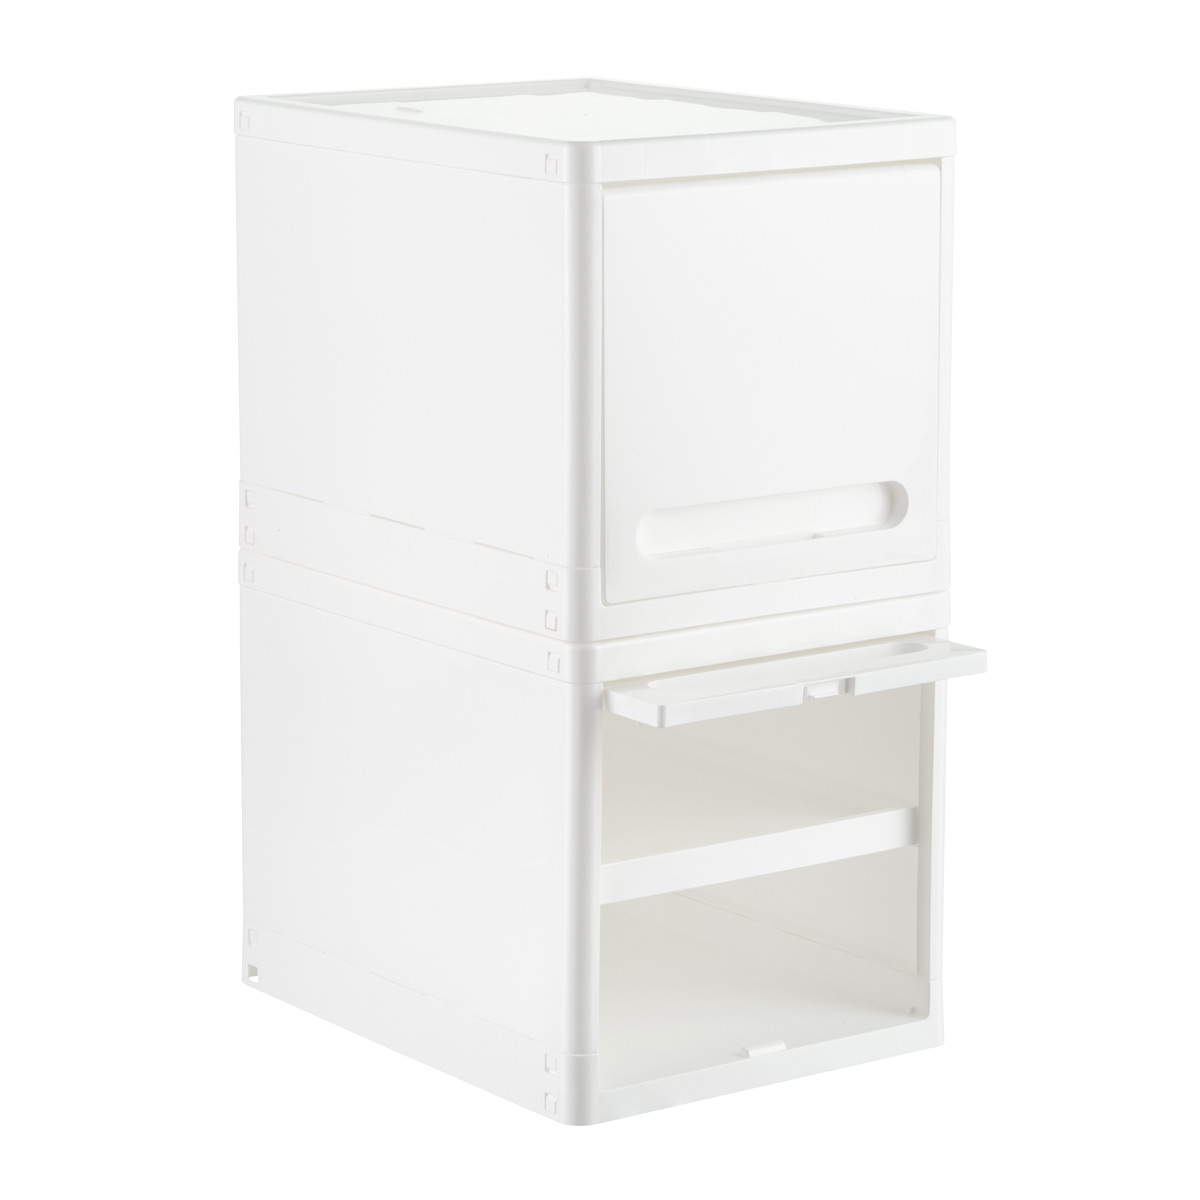 Stackable Storage Bins  Stacking Drawers  u0026 Stackable Bins   The. Stackable Wire Cubes   Facbooik com